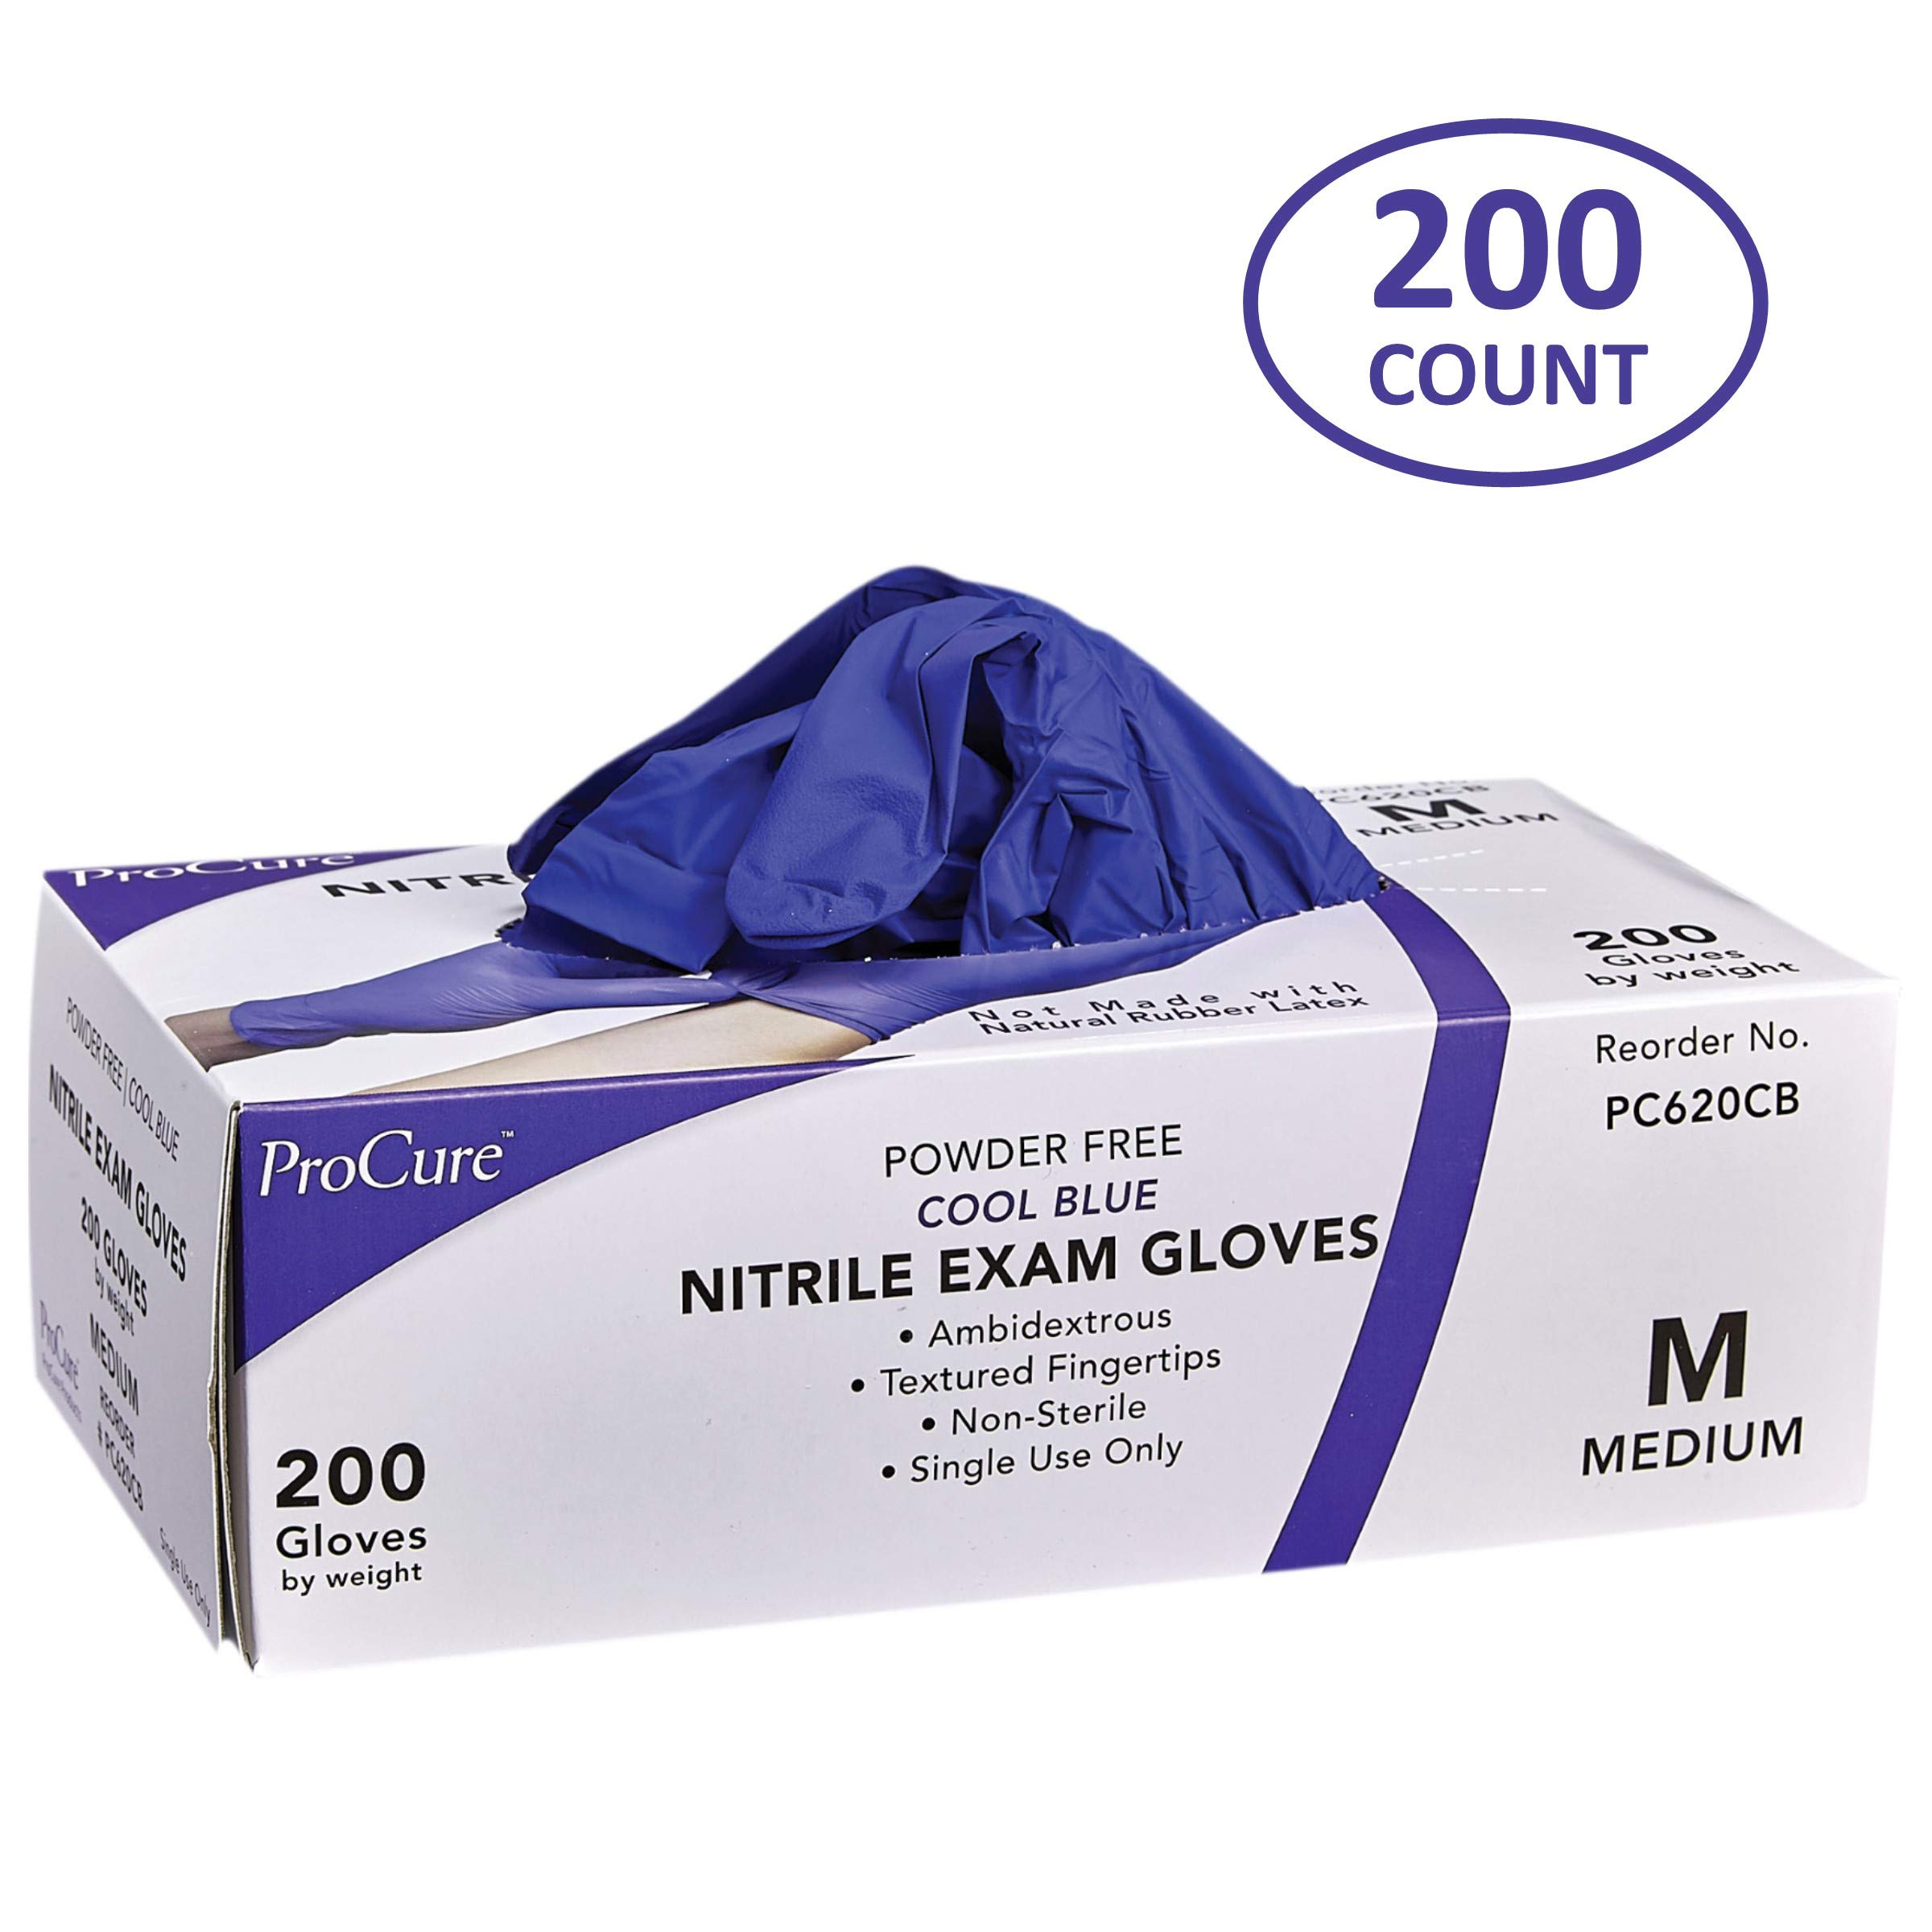 ProCure Disposable Nitrile Gloves - Powder Free, Rubber Latex Free, Medical Exam Grade, Non Sterile, Ambidextrous - Soft with Textured Tips - Cool Blue (Medium, 1 Pack, 200 Count) by Medacure